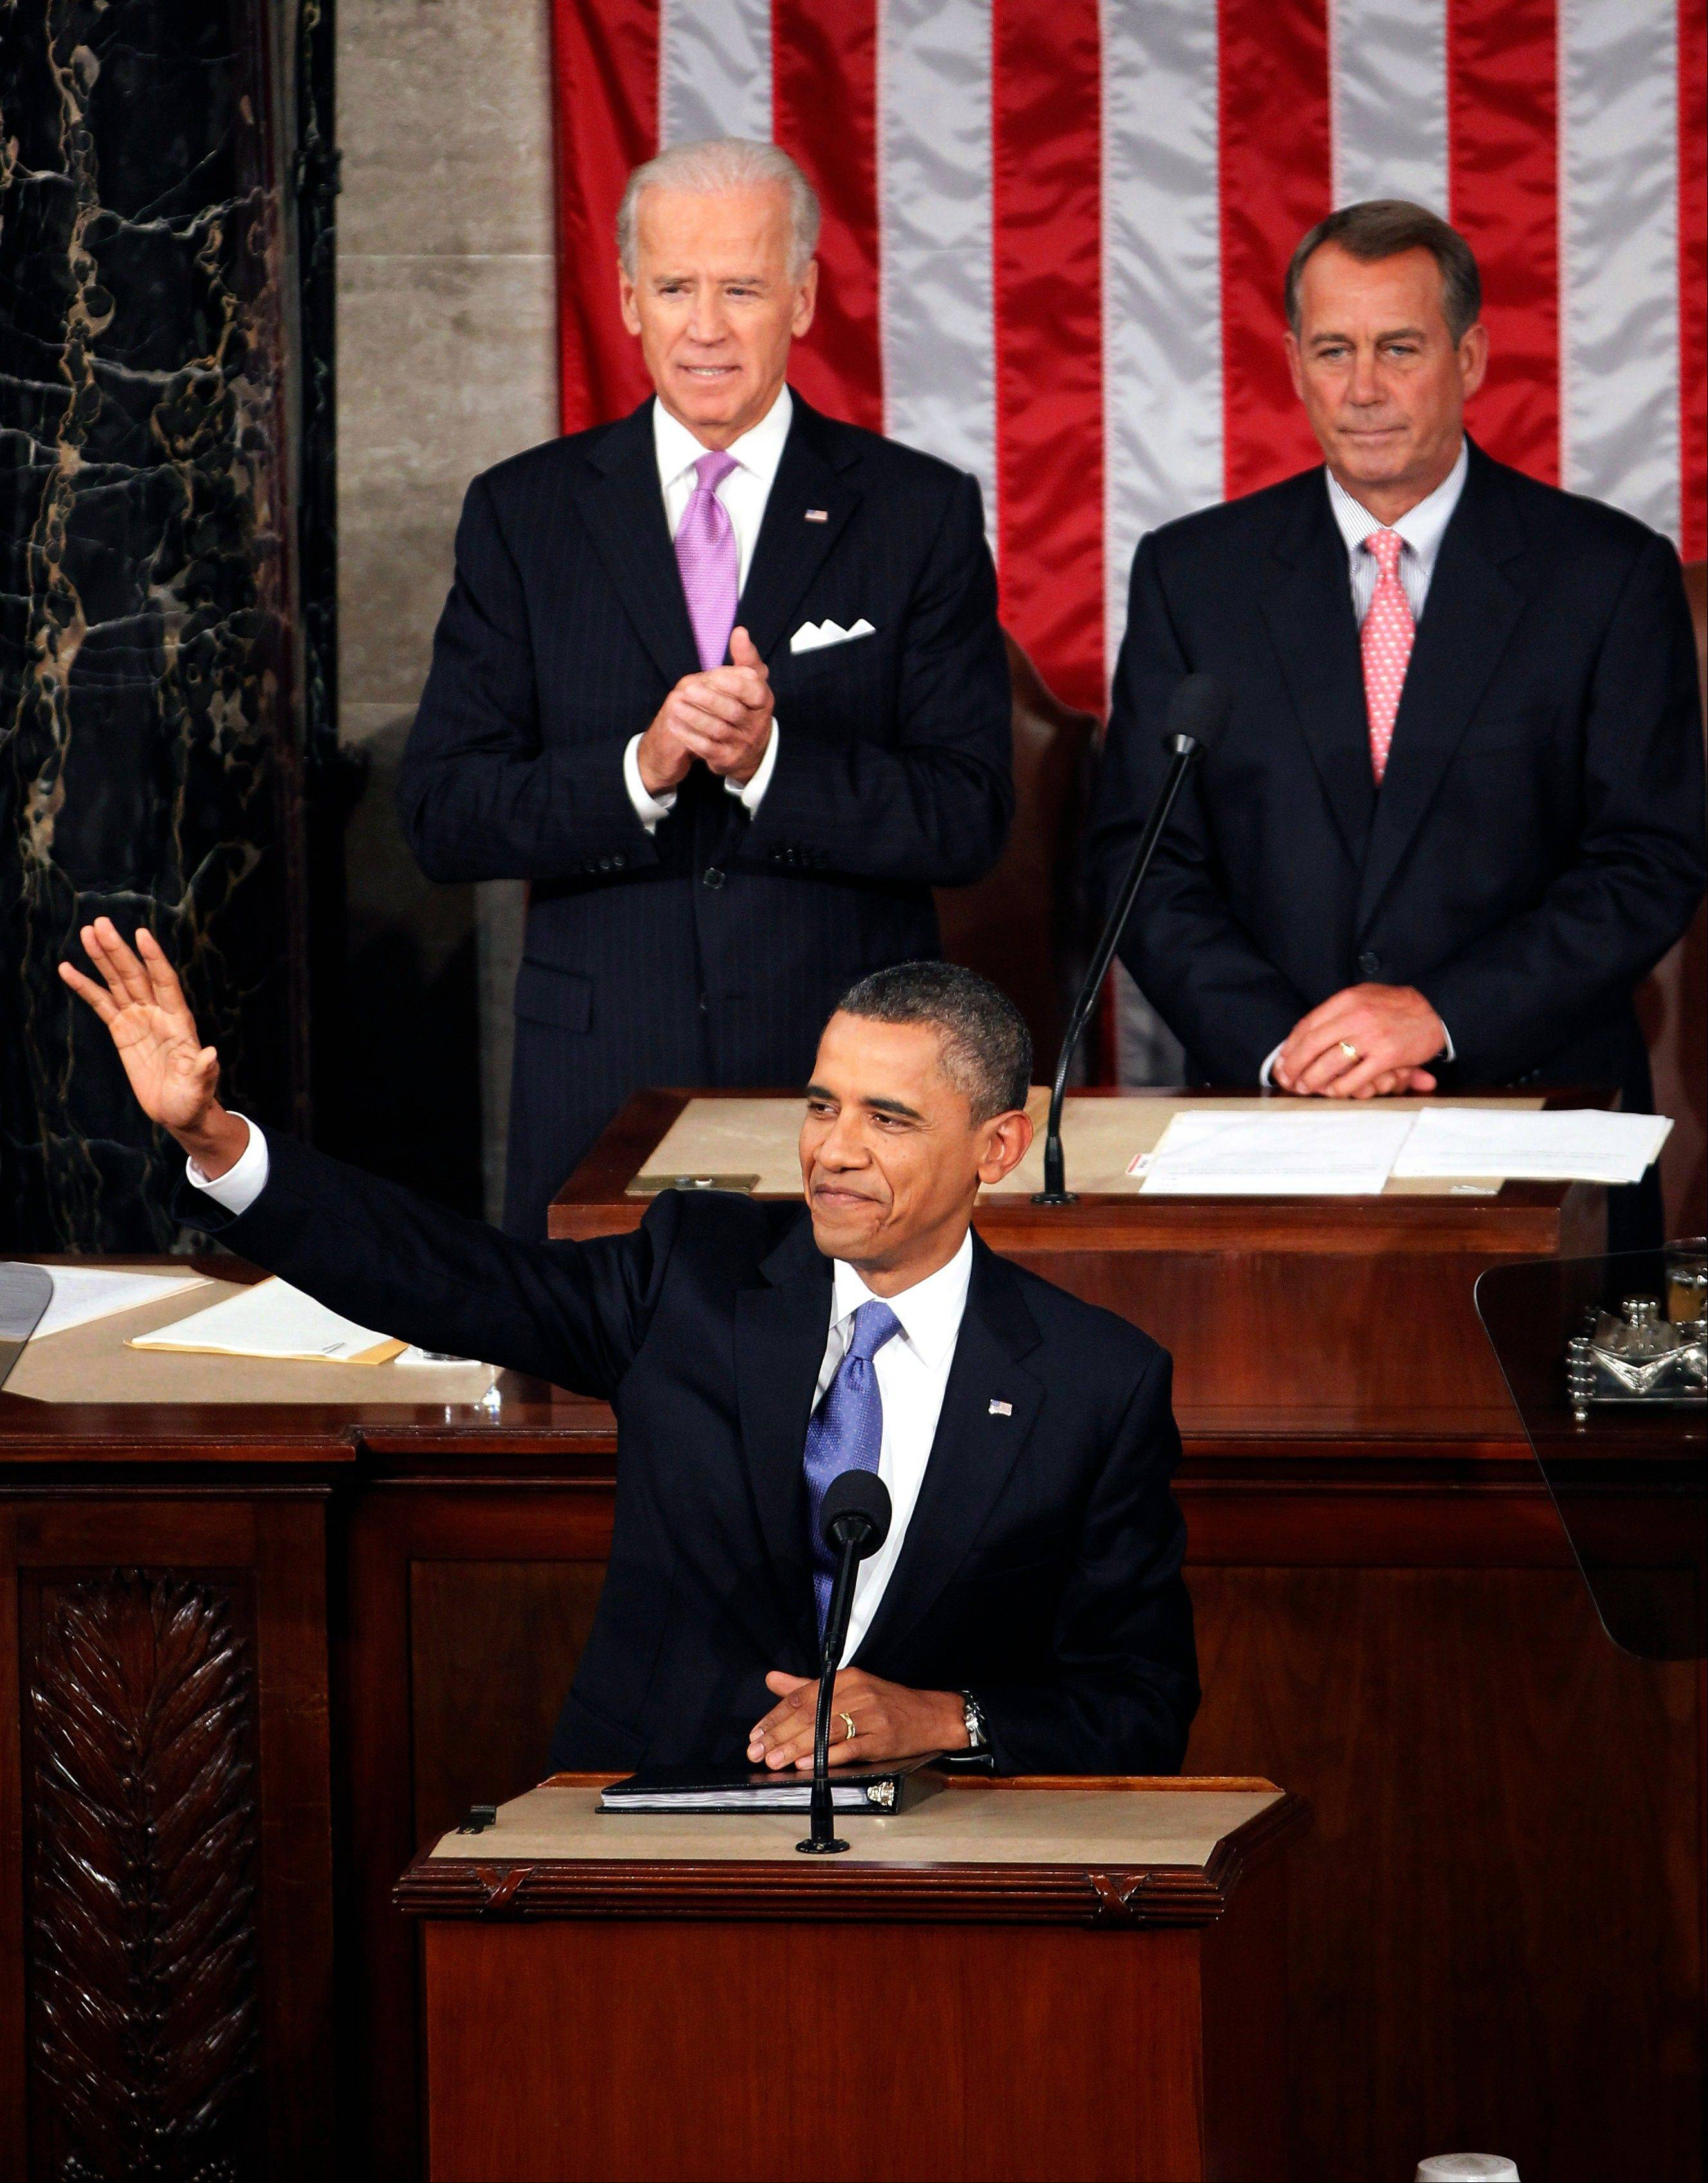 President Barack Obama arrives Thursday to deliver a speech to a joint session of Congress at the Capitol in Washington. Watching are Vice President Joe Biden and House Speaker John Boehner.